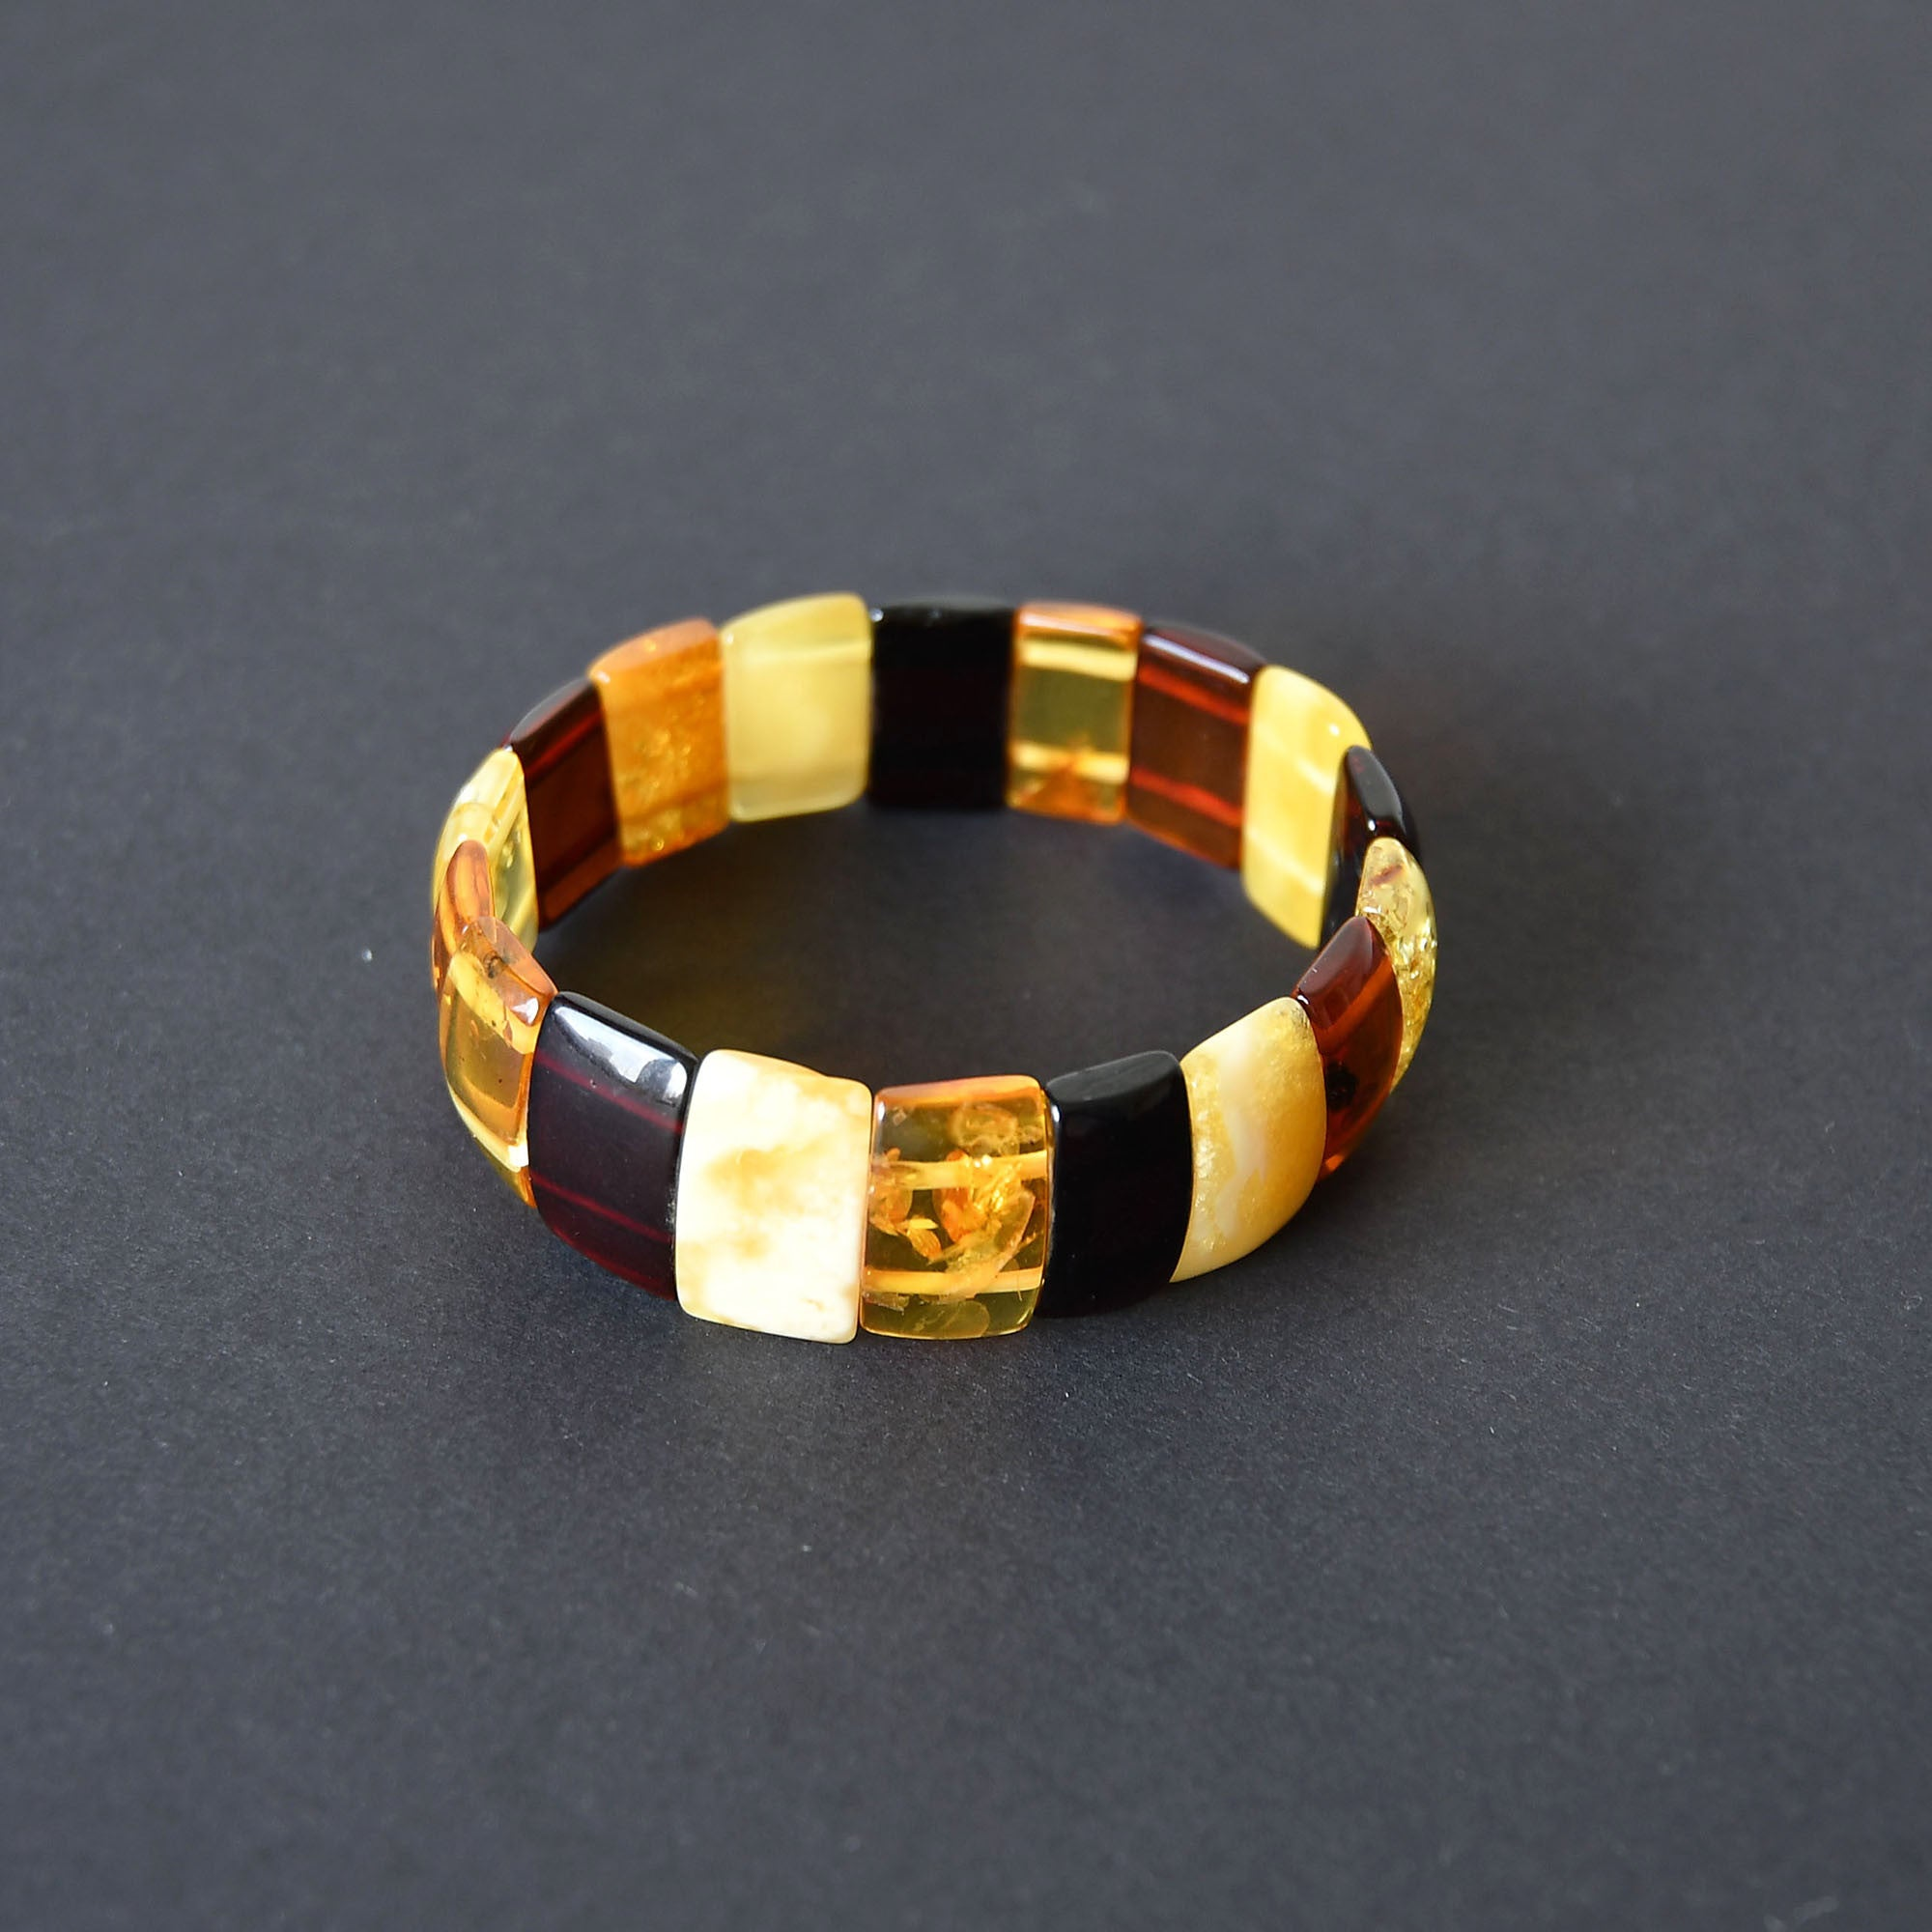 Colorful amber bracelet with elastic band